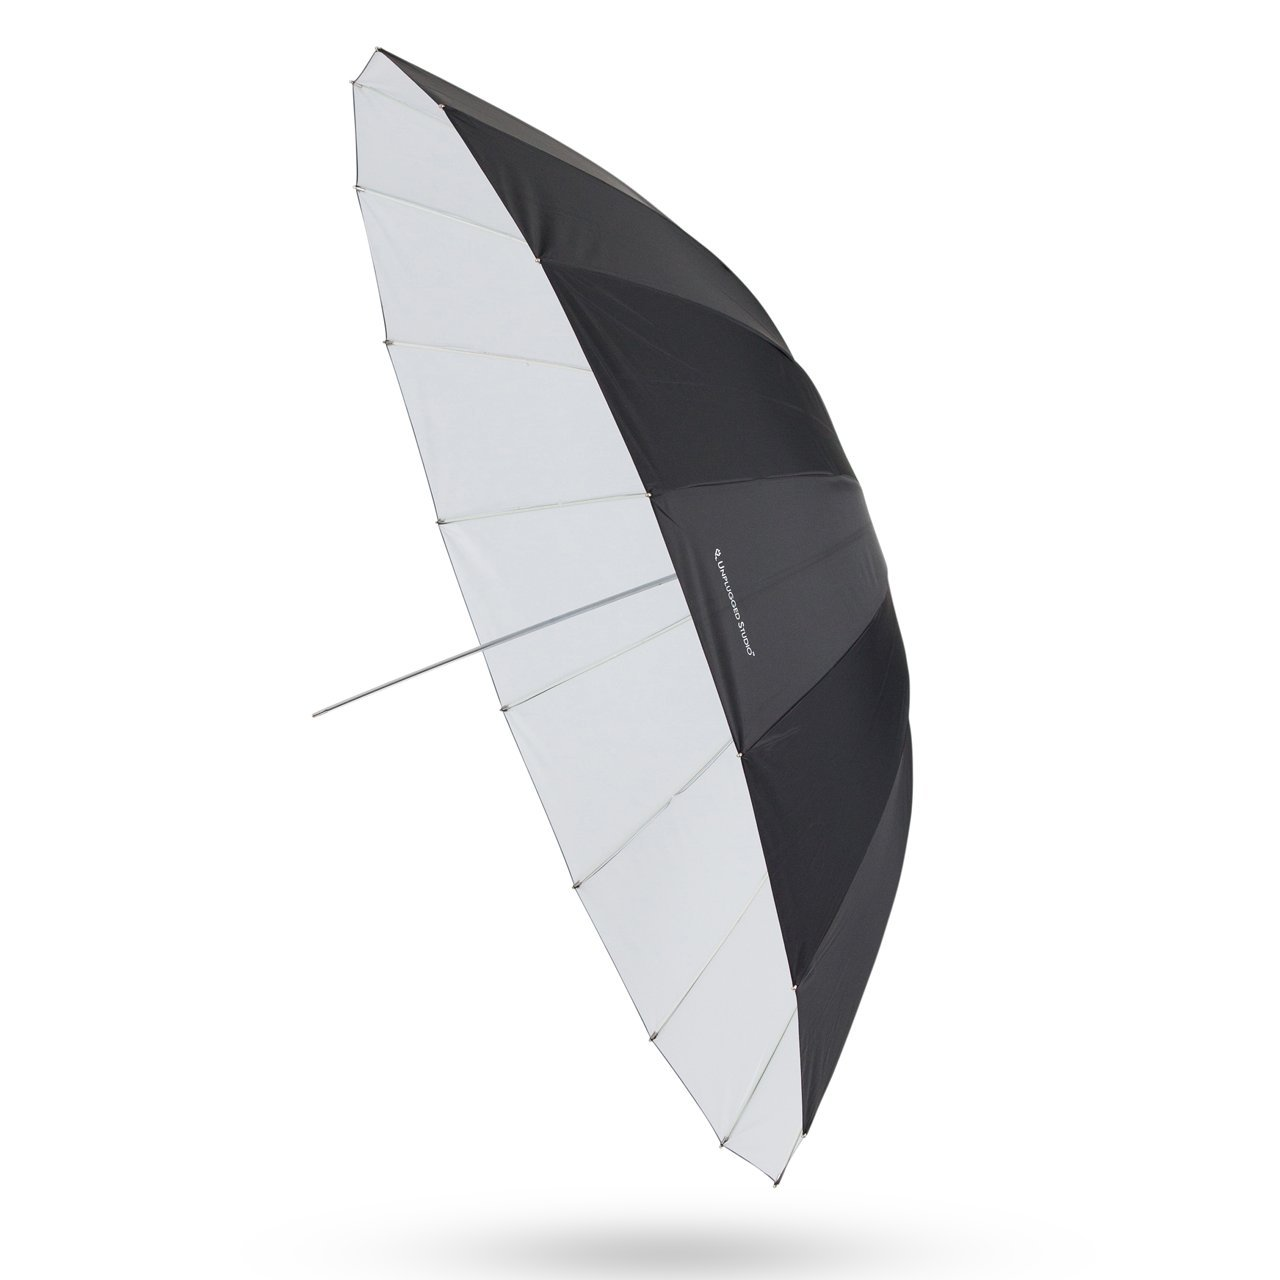 UNPLUGGED STUDIO 70inch White Umbrella (16 Fiberglass Ribs)